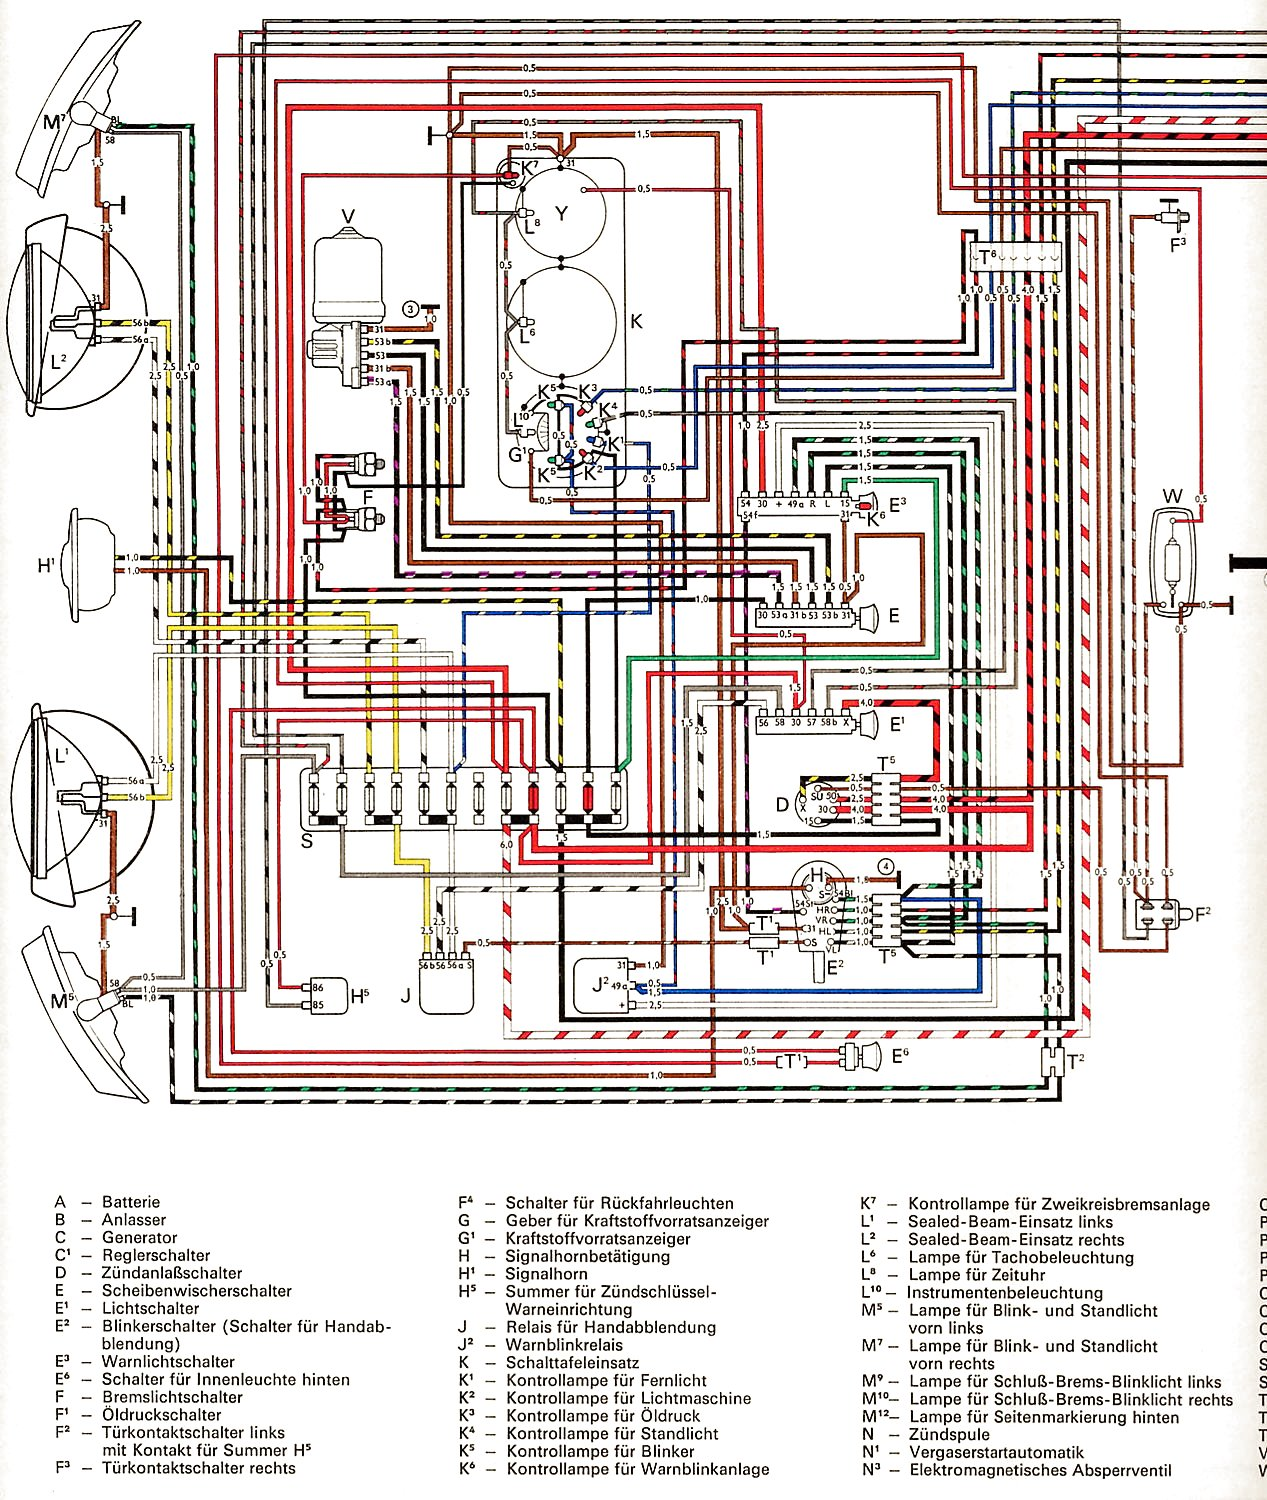 1970 bug wiring diagram 68 vw bug wiring diagram vw wiring diagrams